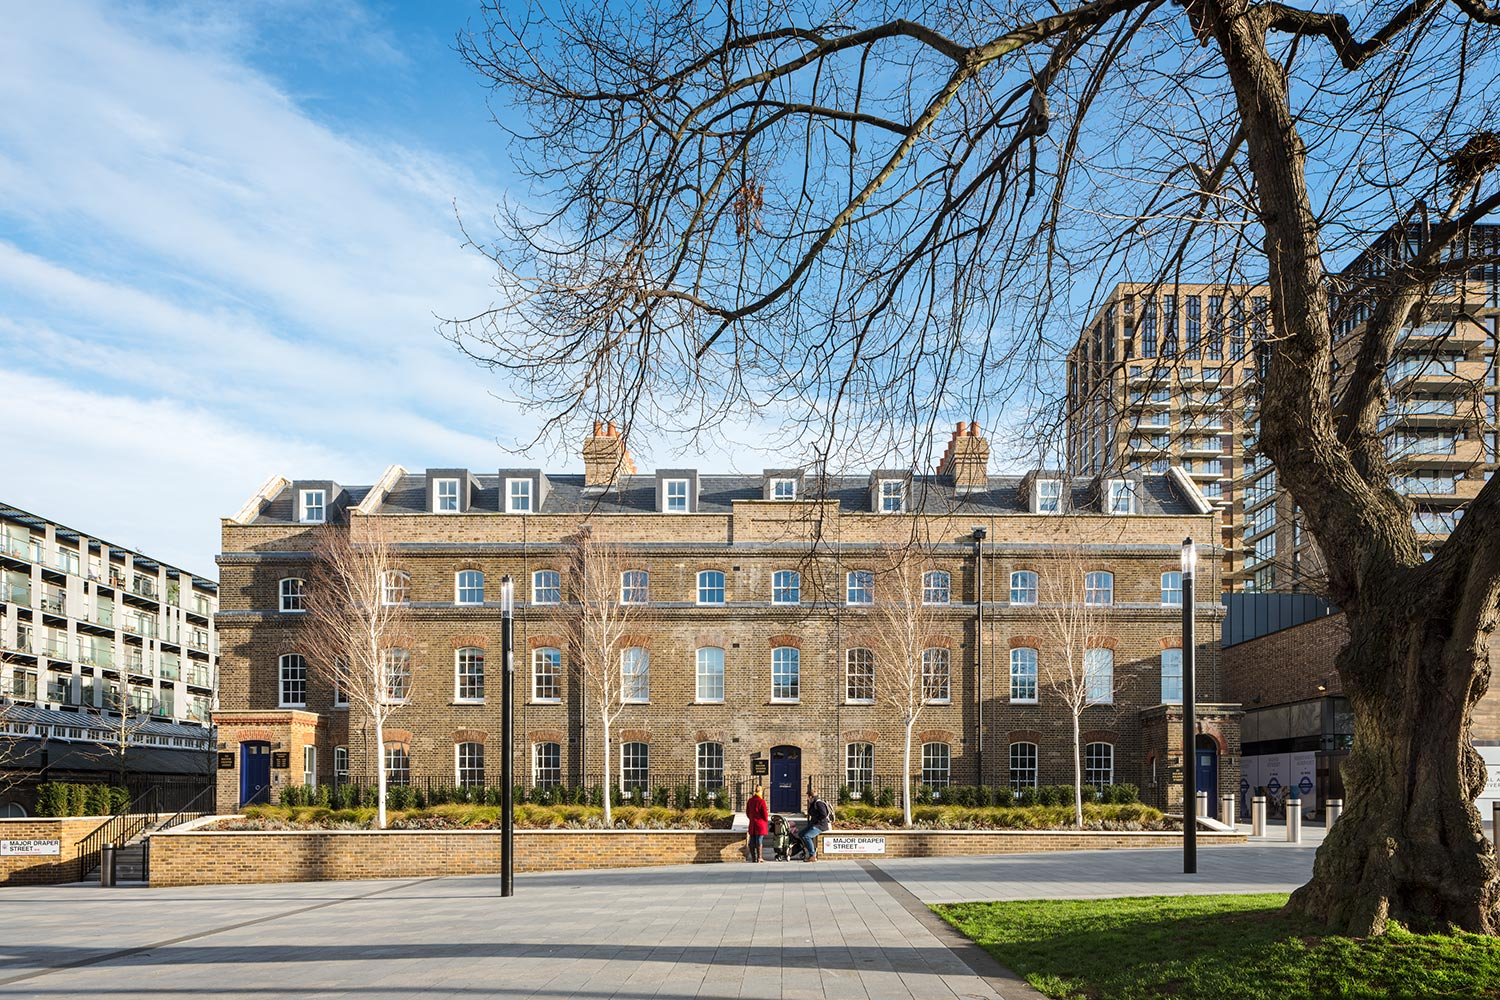 View from afar of Building 11 – The Officers' House at Royal Arsenal Riverside